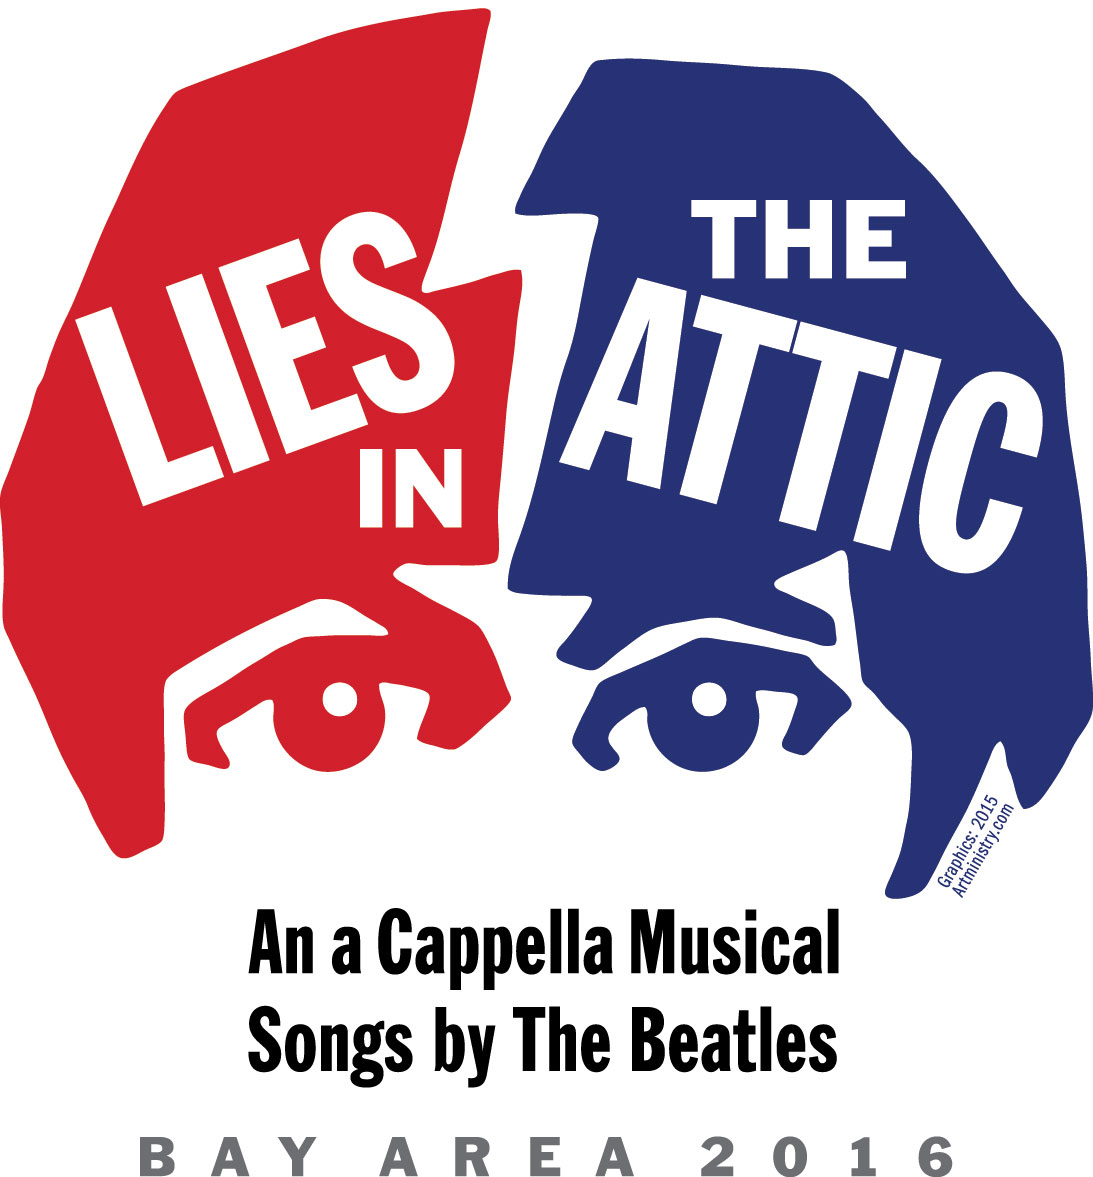 Lies in the Attic, an A Cappella Musical with Songs by The Beatles